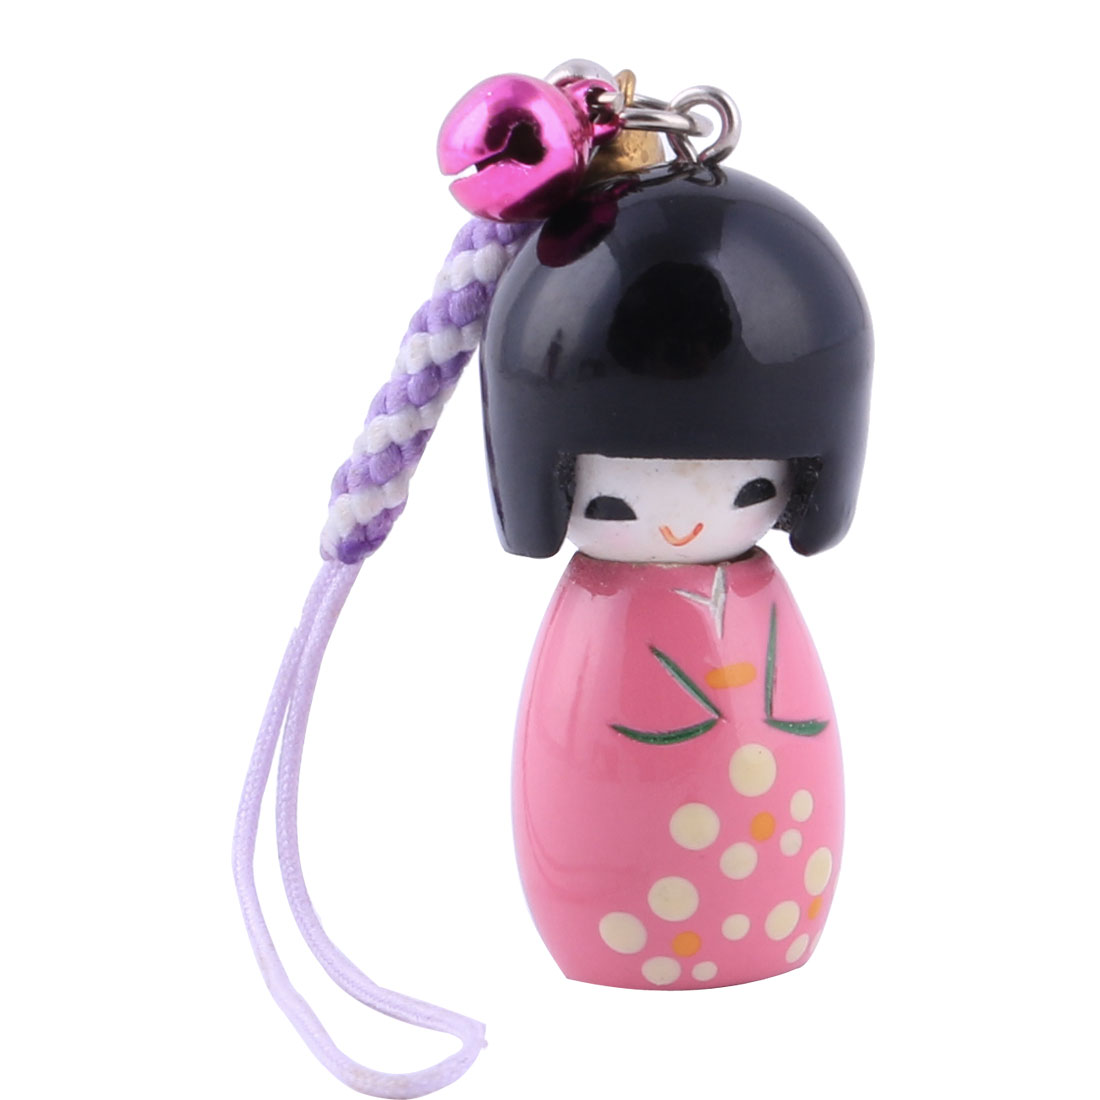 Wooden Japanese Kokeshi Doll Pendant Bell Decor Mobile Phone Strap Chain Pink